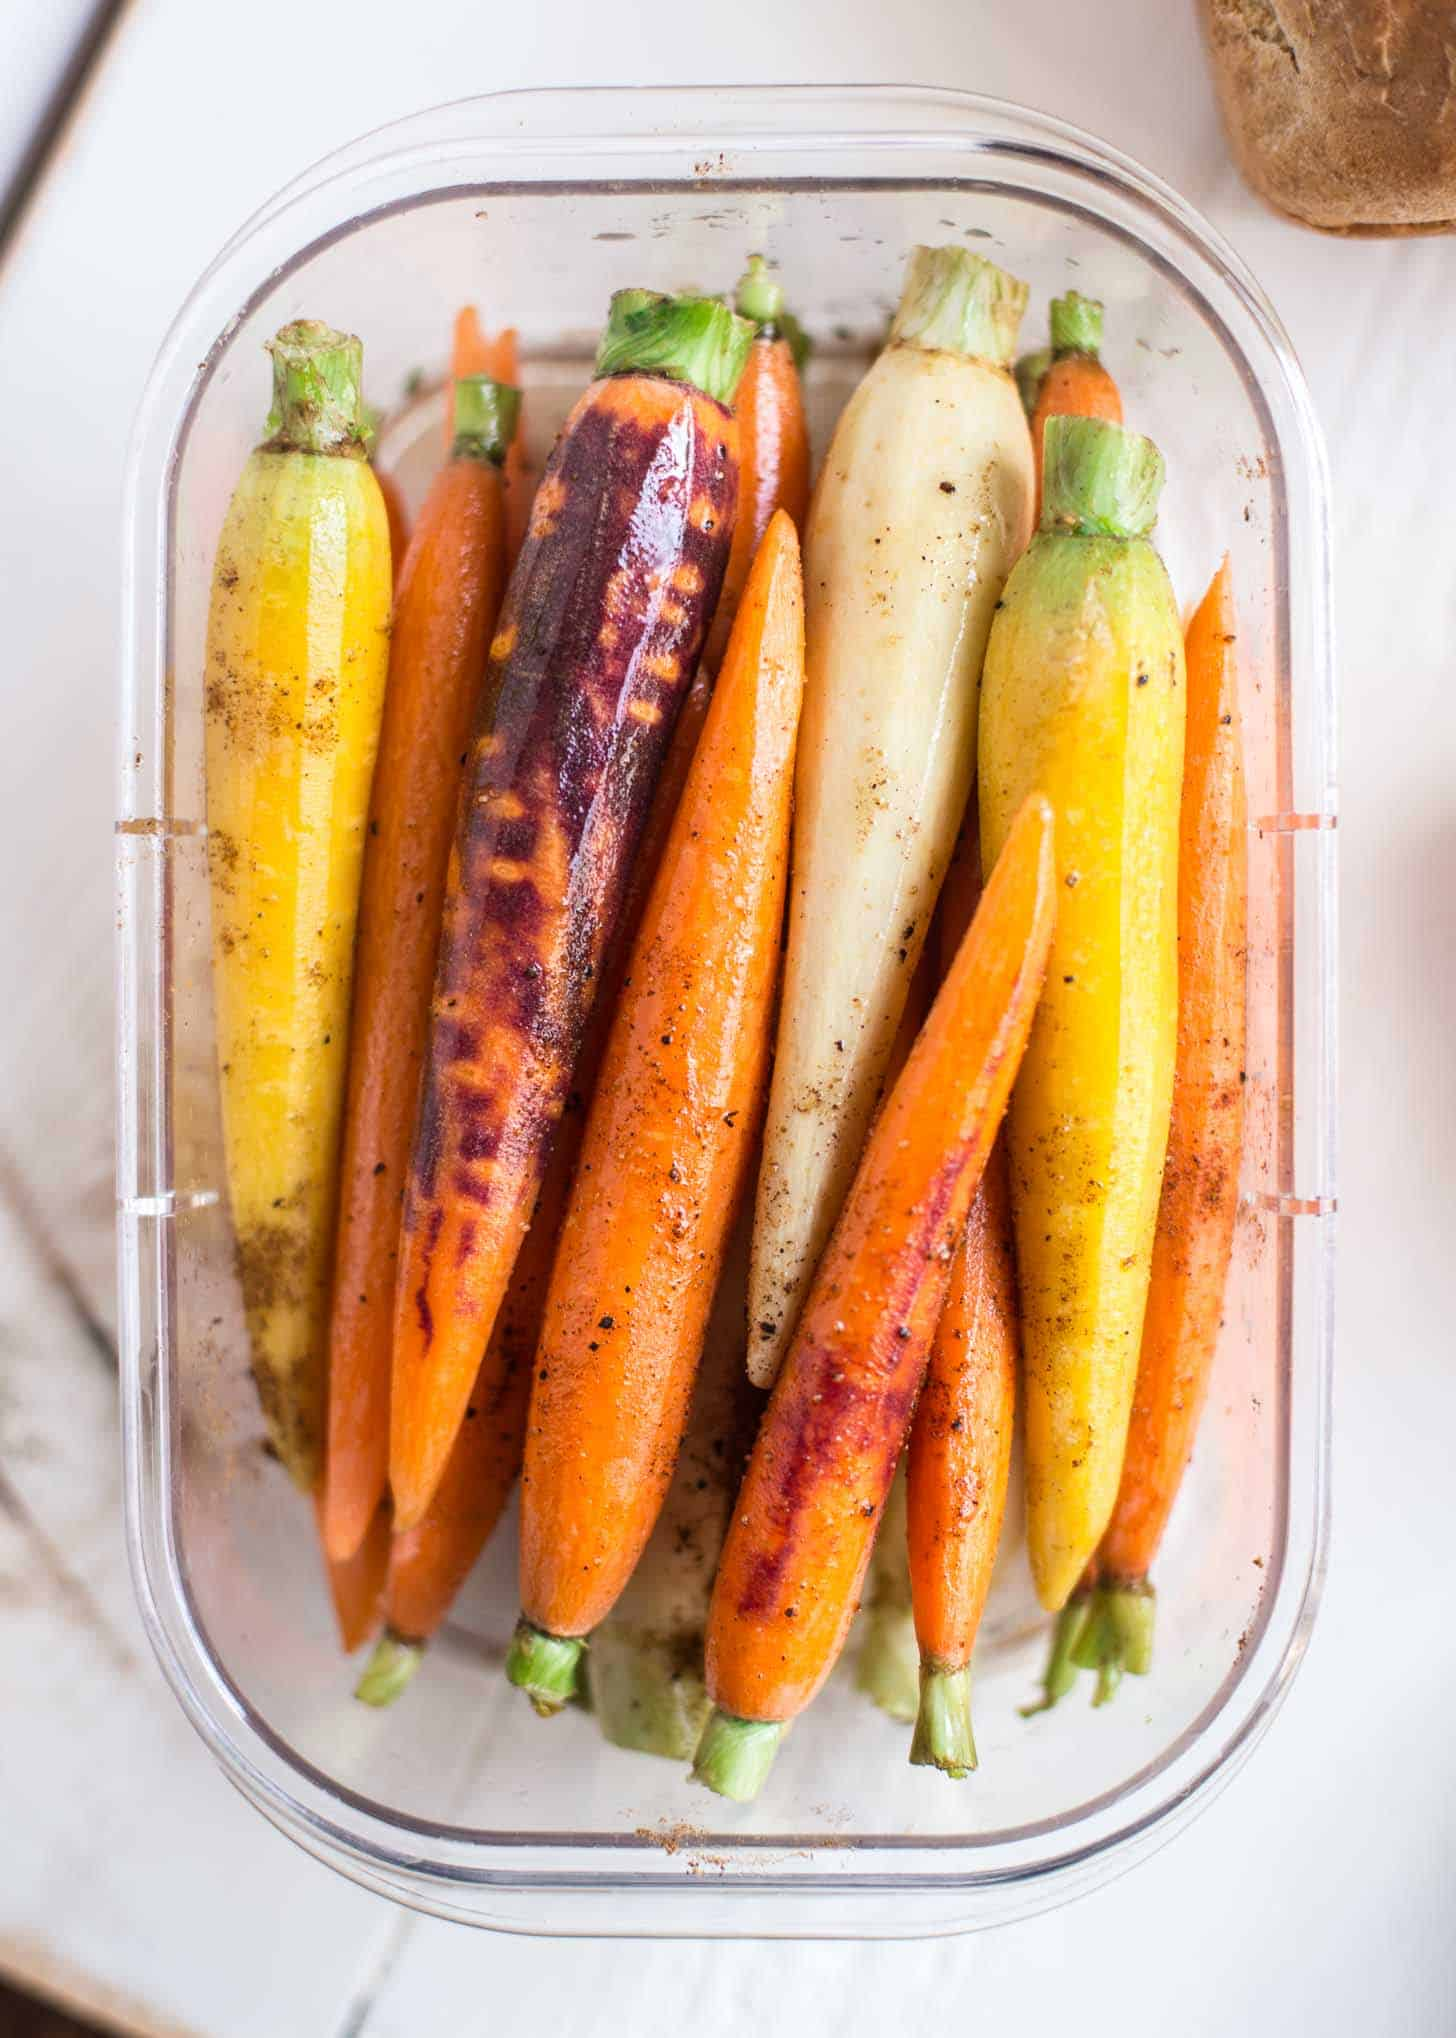 cooked whole carrots in a plastic container